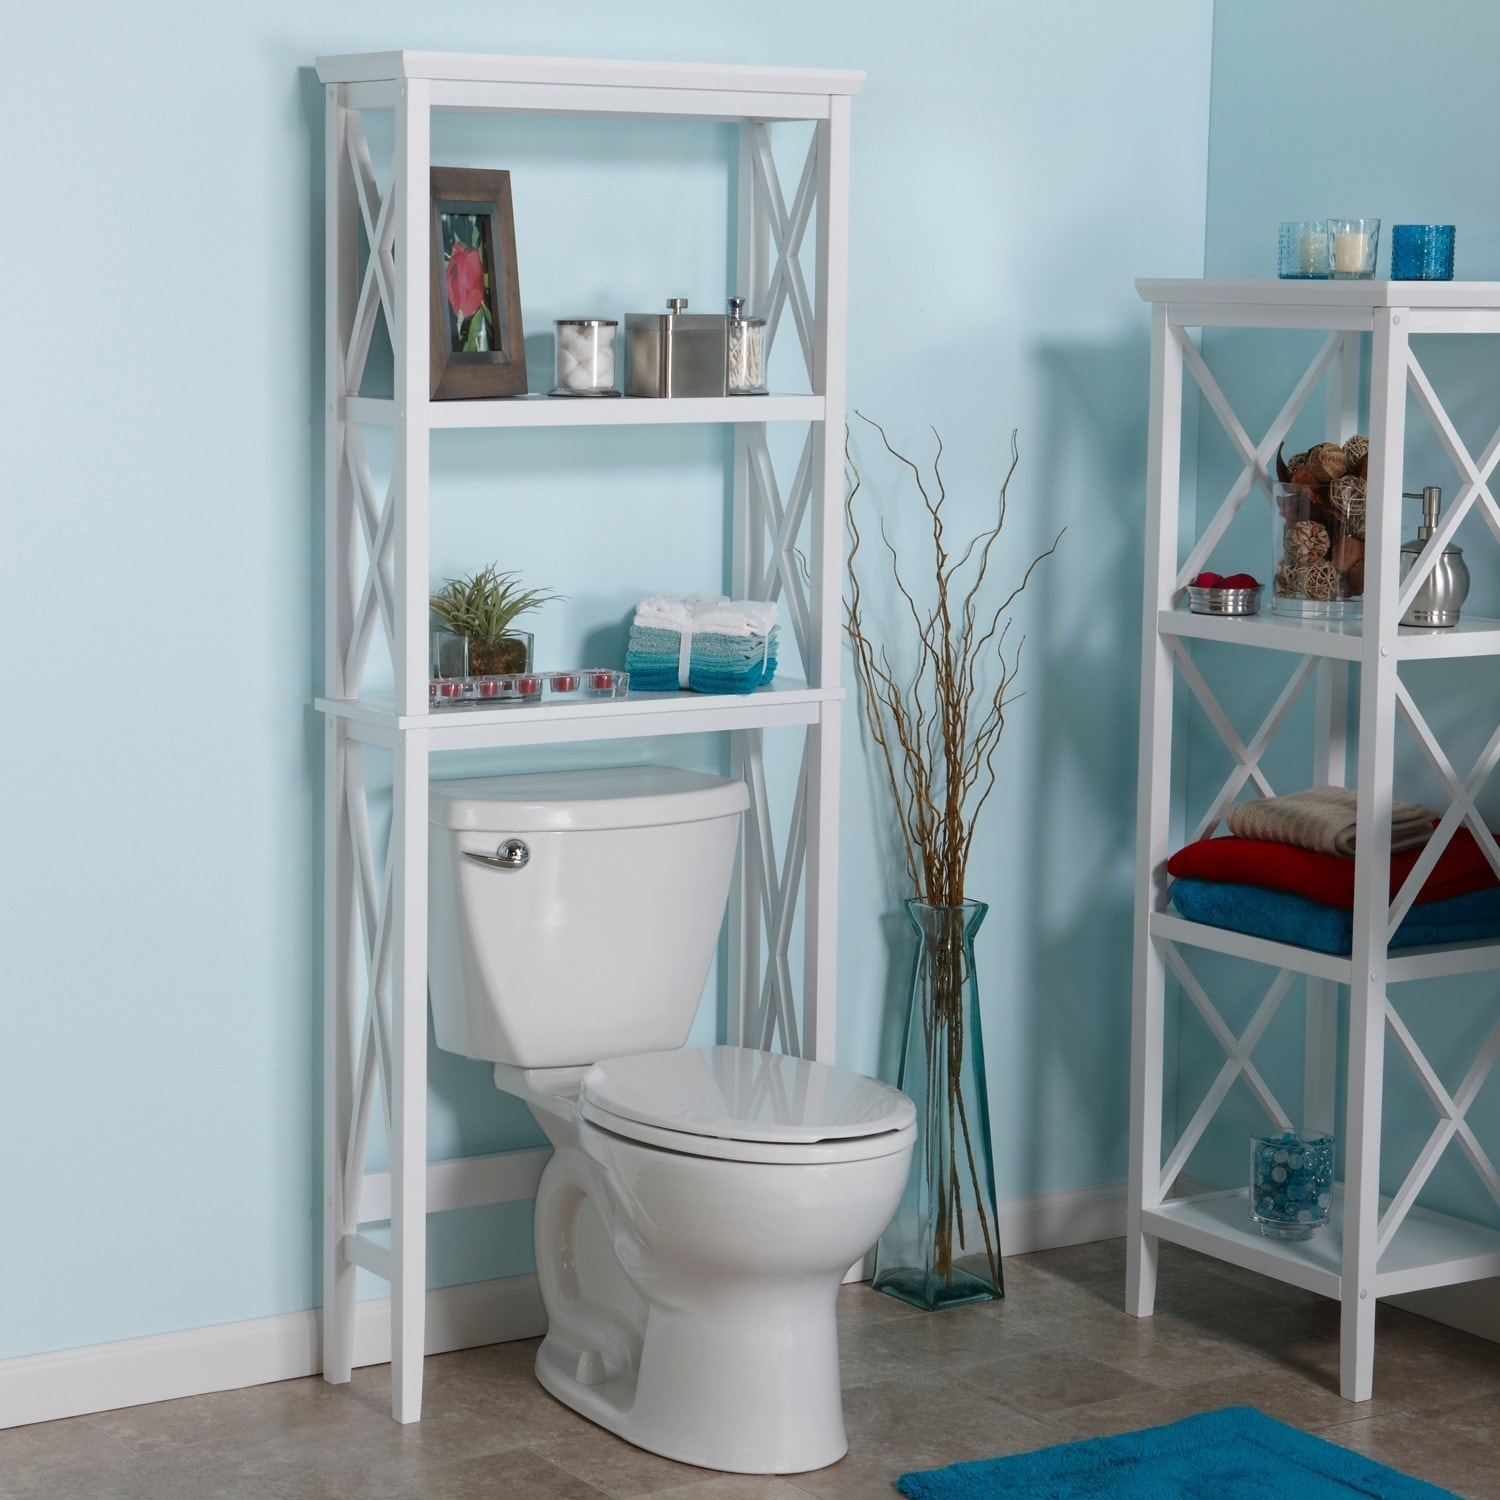 RiverRidge Home X Frame Bathroom Spacesaver   Free Shipping Today    Overstock.com   15630893